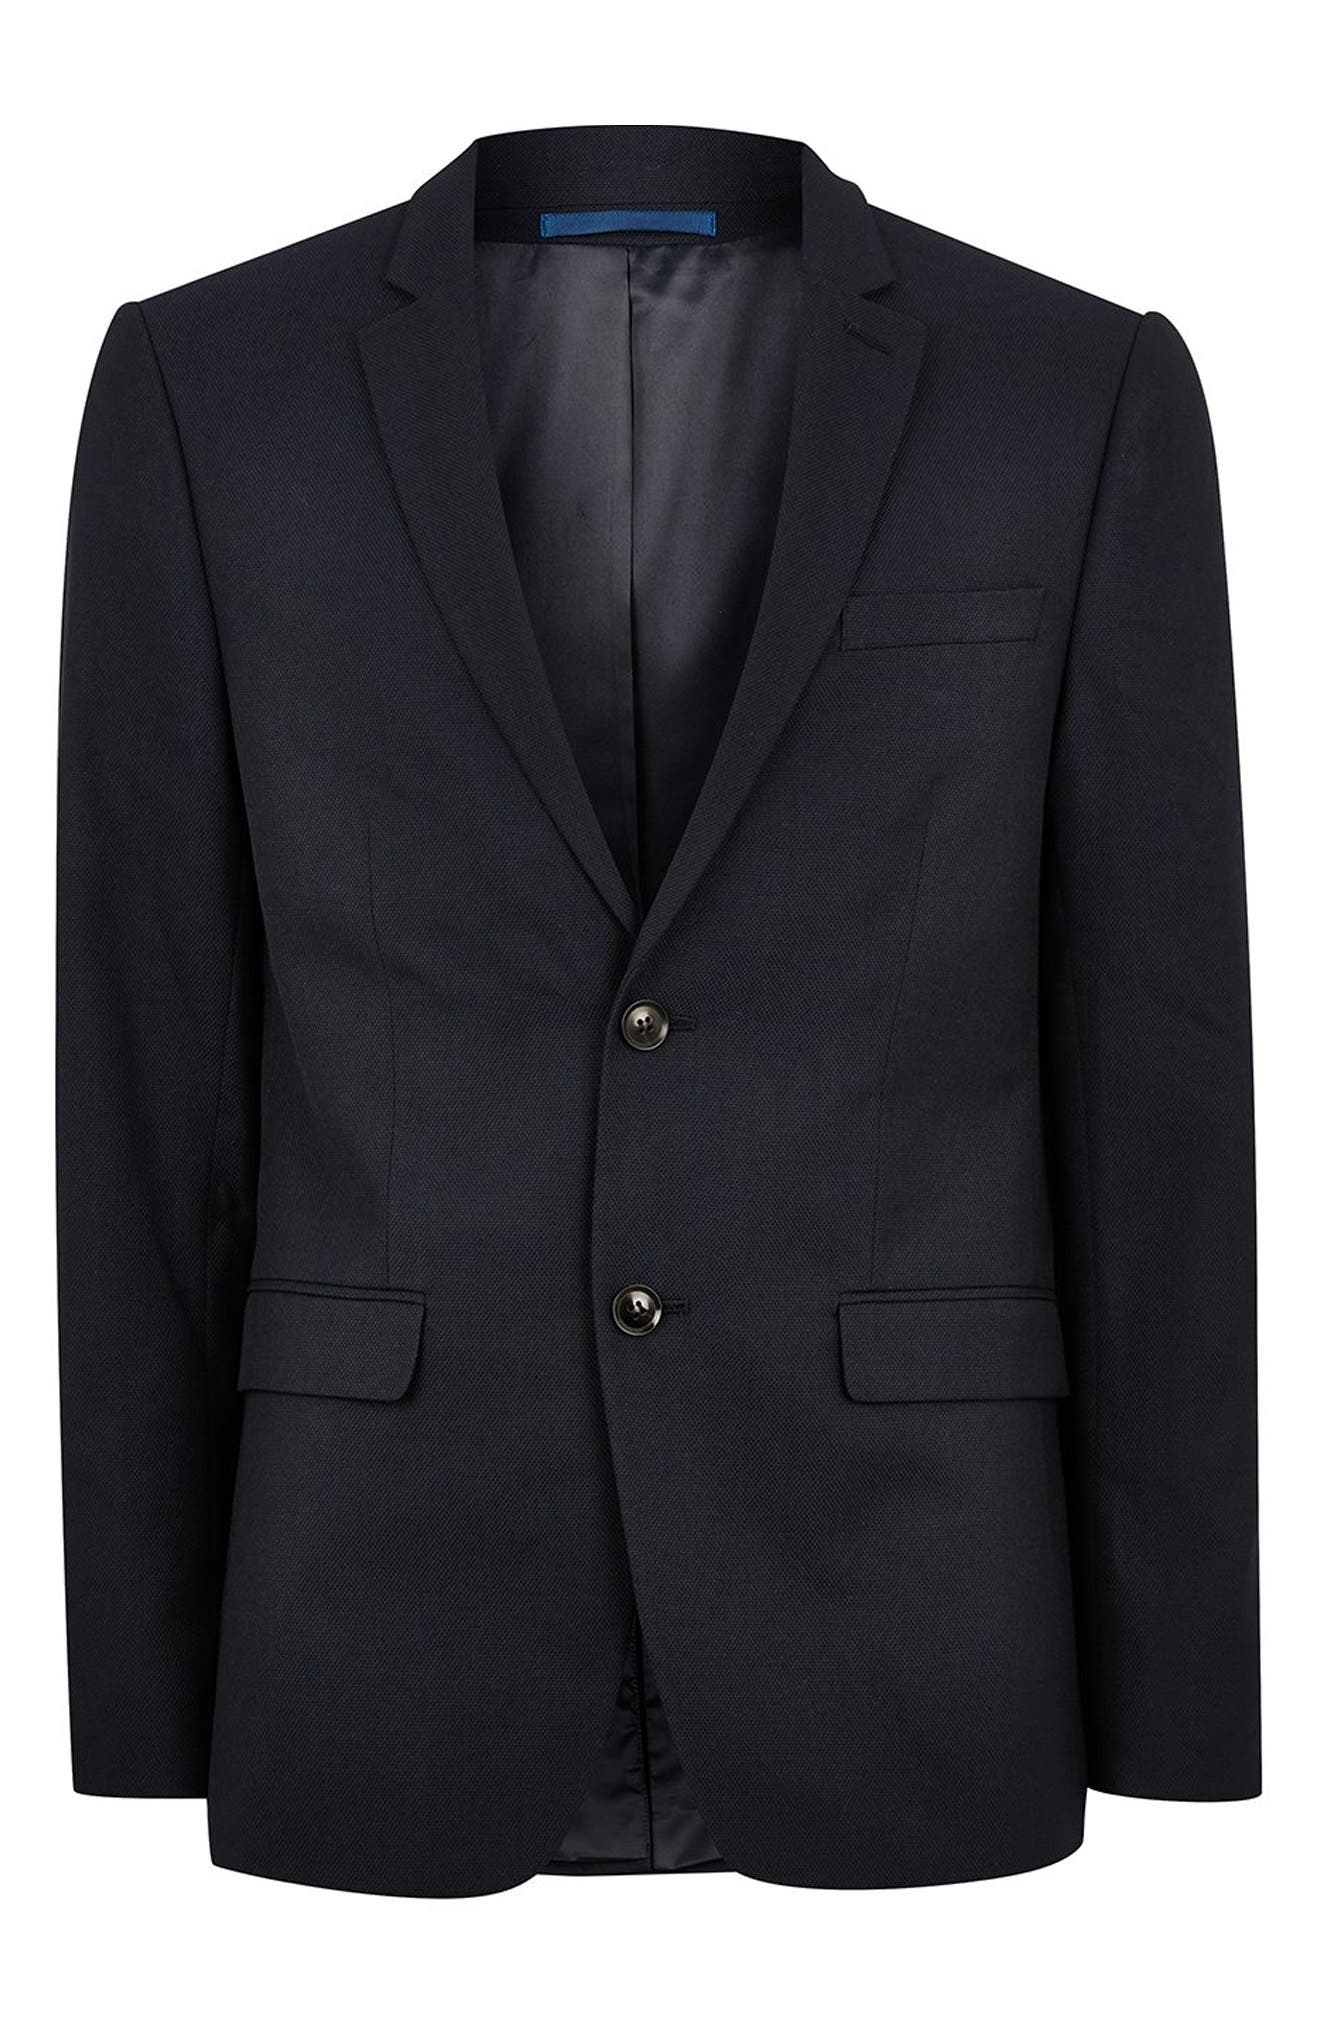 Skinny Fit Textured Suit Jacket,                             Alternate thumbnail 4, color,                             DARK BLUE